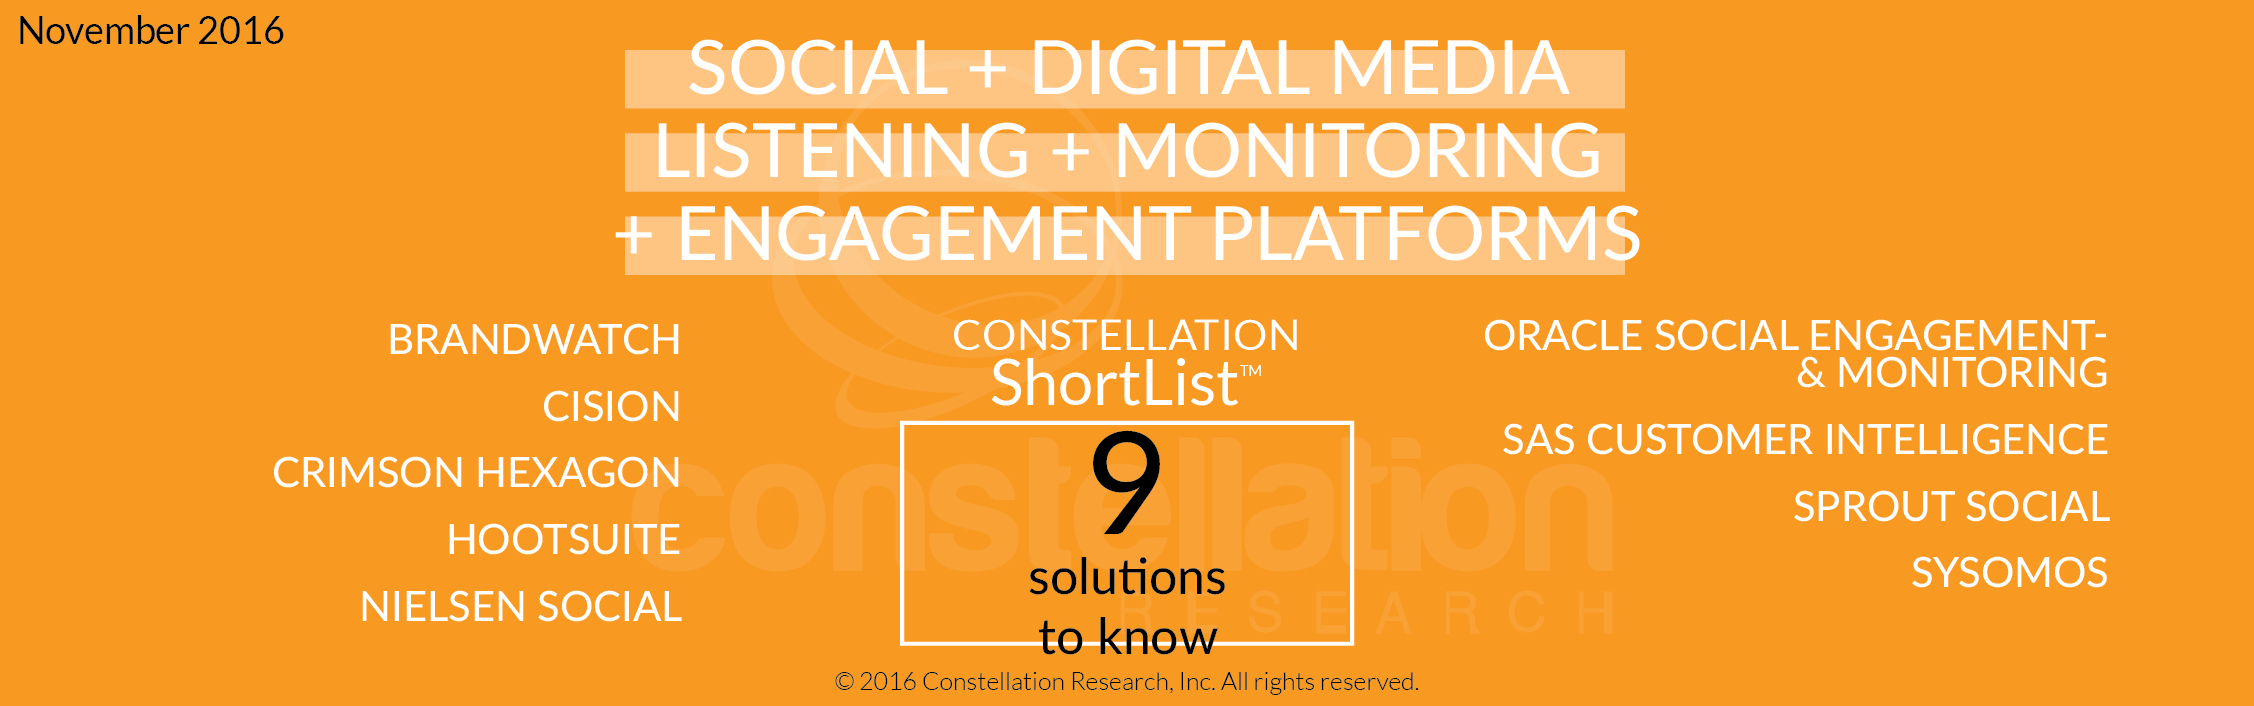 Constellation ShortList™ Social / Digital Media Listening / Monitoring/ Engagement Platforms